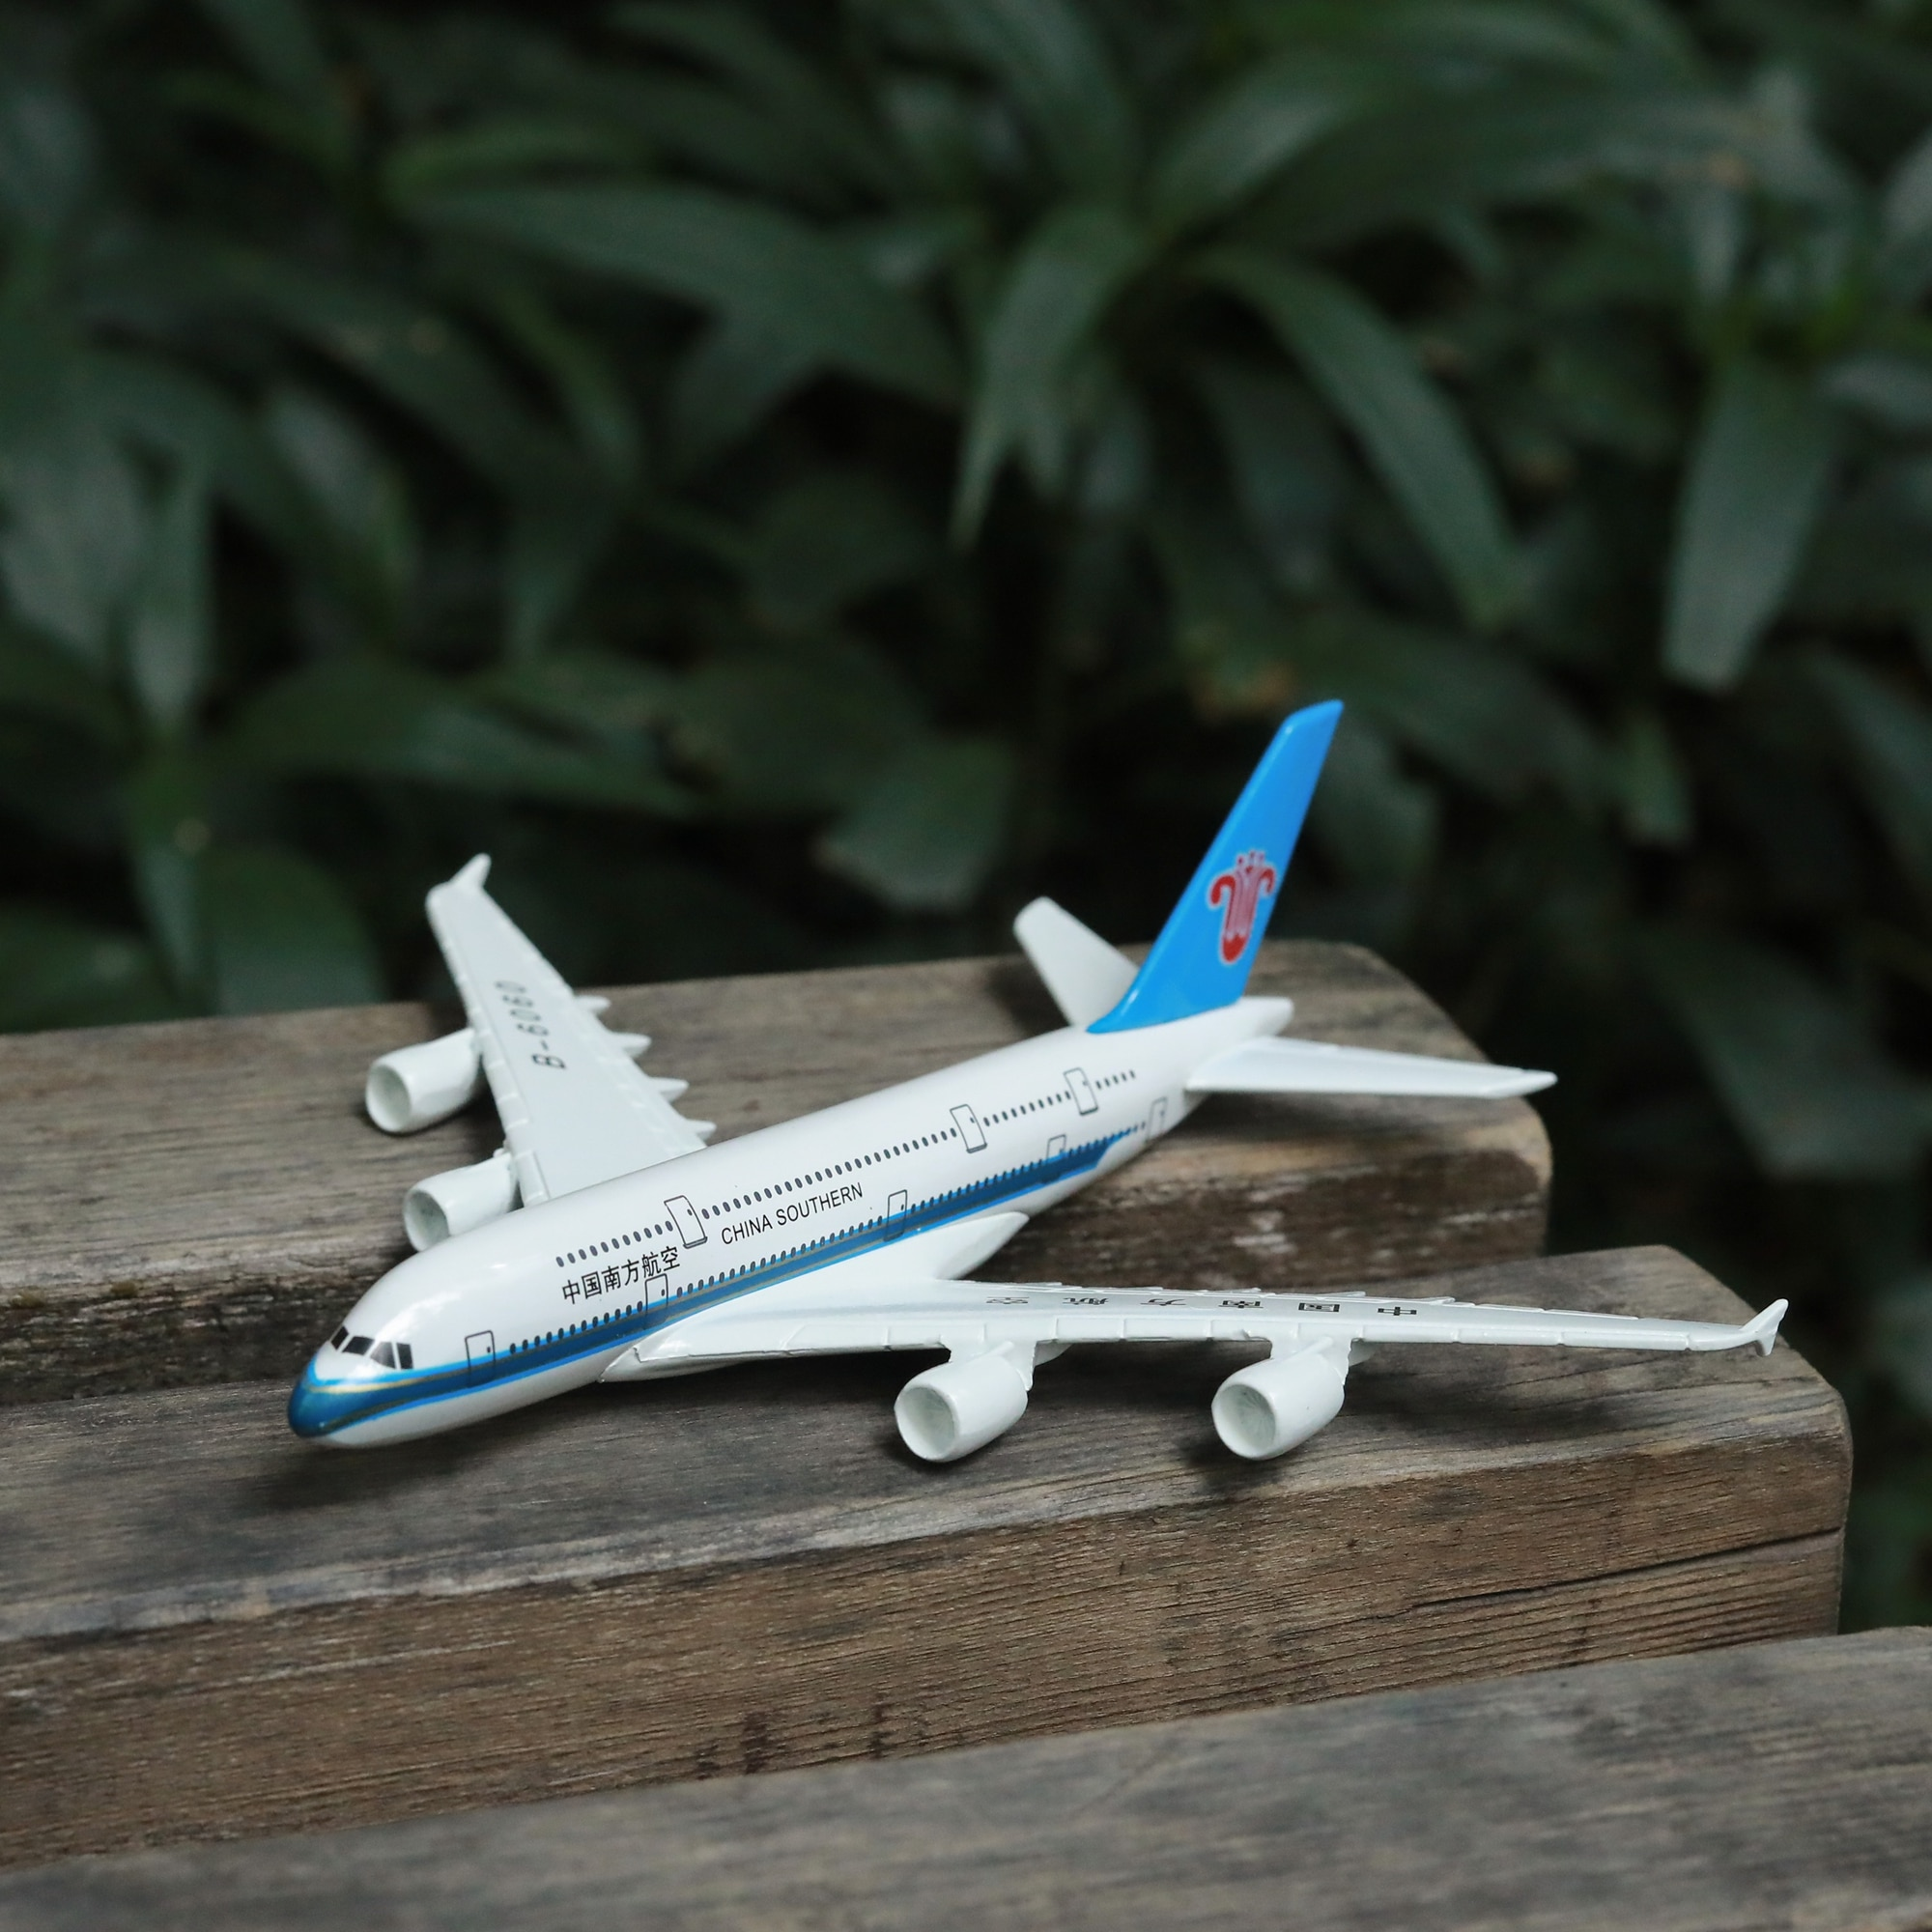 China Southern Airlines A380 Airplane Diecast Aircraft Model 6 Metal Aeroplane Home Office Decor Mini Moto Toys for Children air france a380 airplane diecast aircraft model 6 metal plane aeroplane home office decor mini moto toys for children